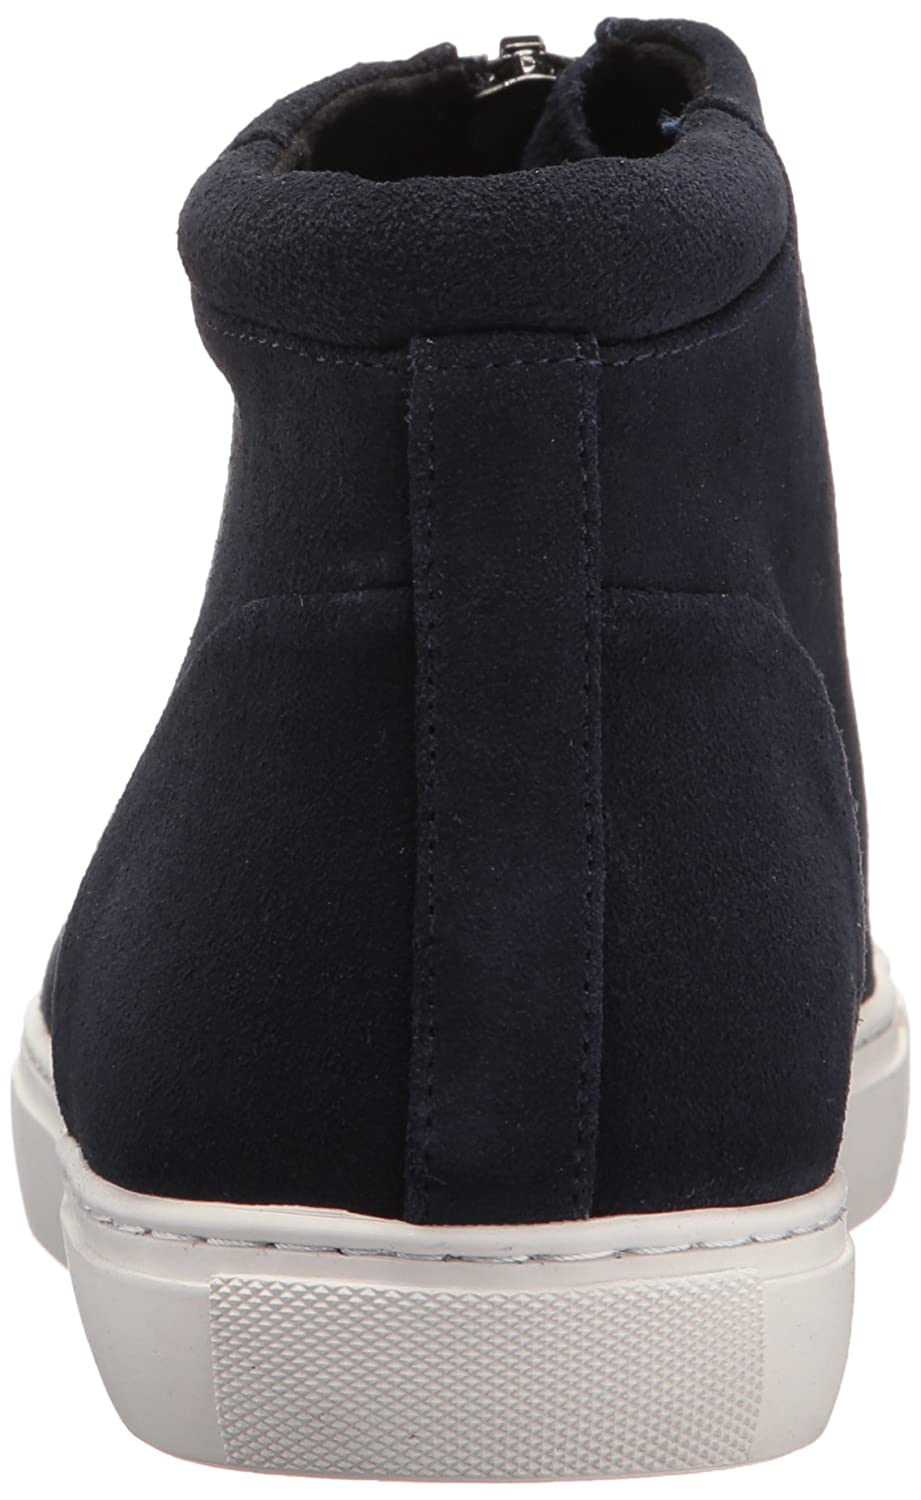 Kenneth Cole New York Women's Kayla High Top Front Zip Suede Fashion Sneaker B06ZYBP6D5 6.5 B(M) US|Navy